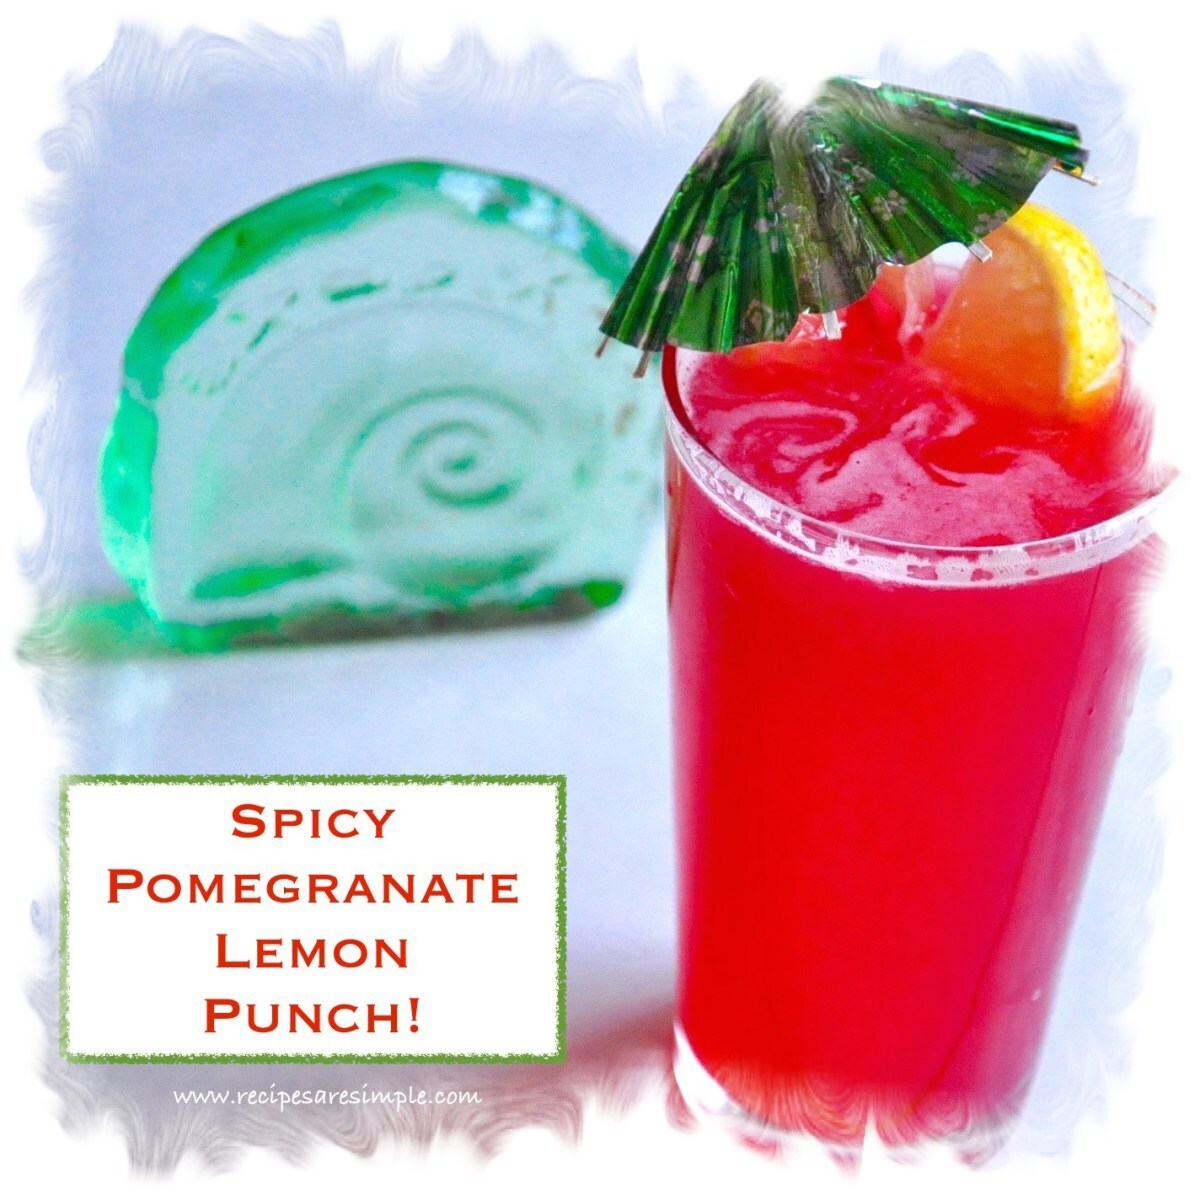 Spicy Pomegranate Lemon Punch